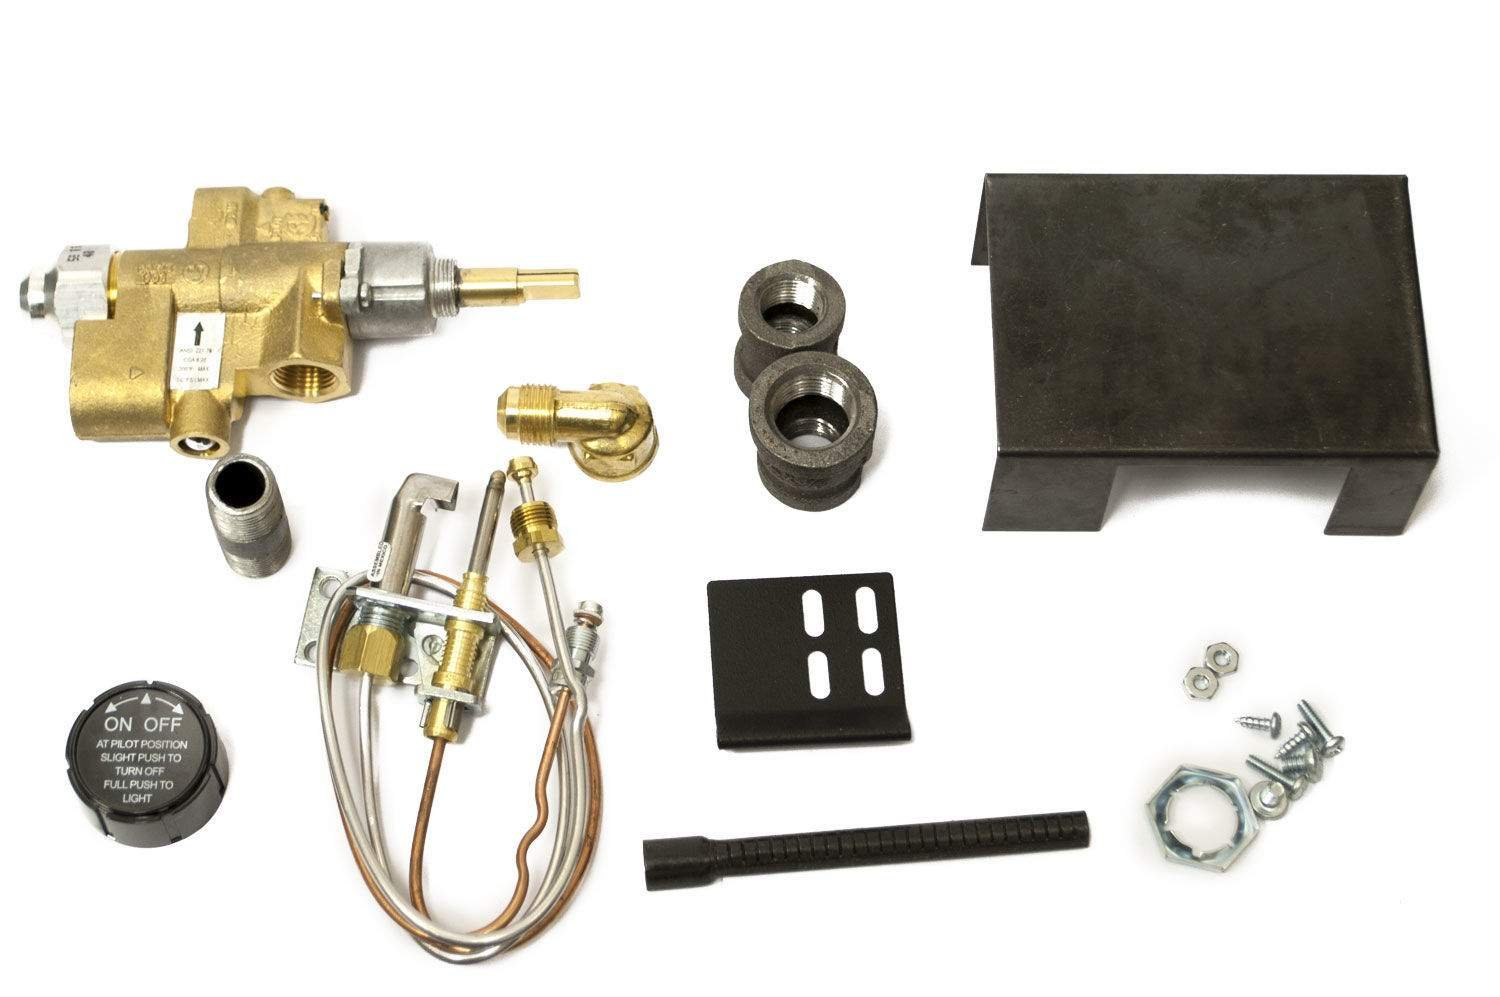 Hearth Products Controls Copreci Low Profile Safety Pilot Kit (91PKN), Natural Gas by Hearth Products Controls